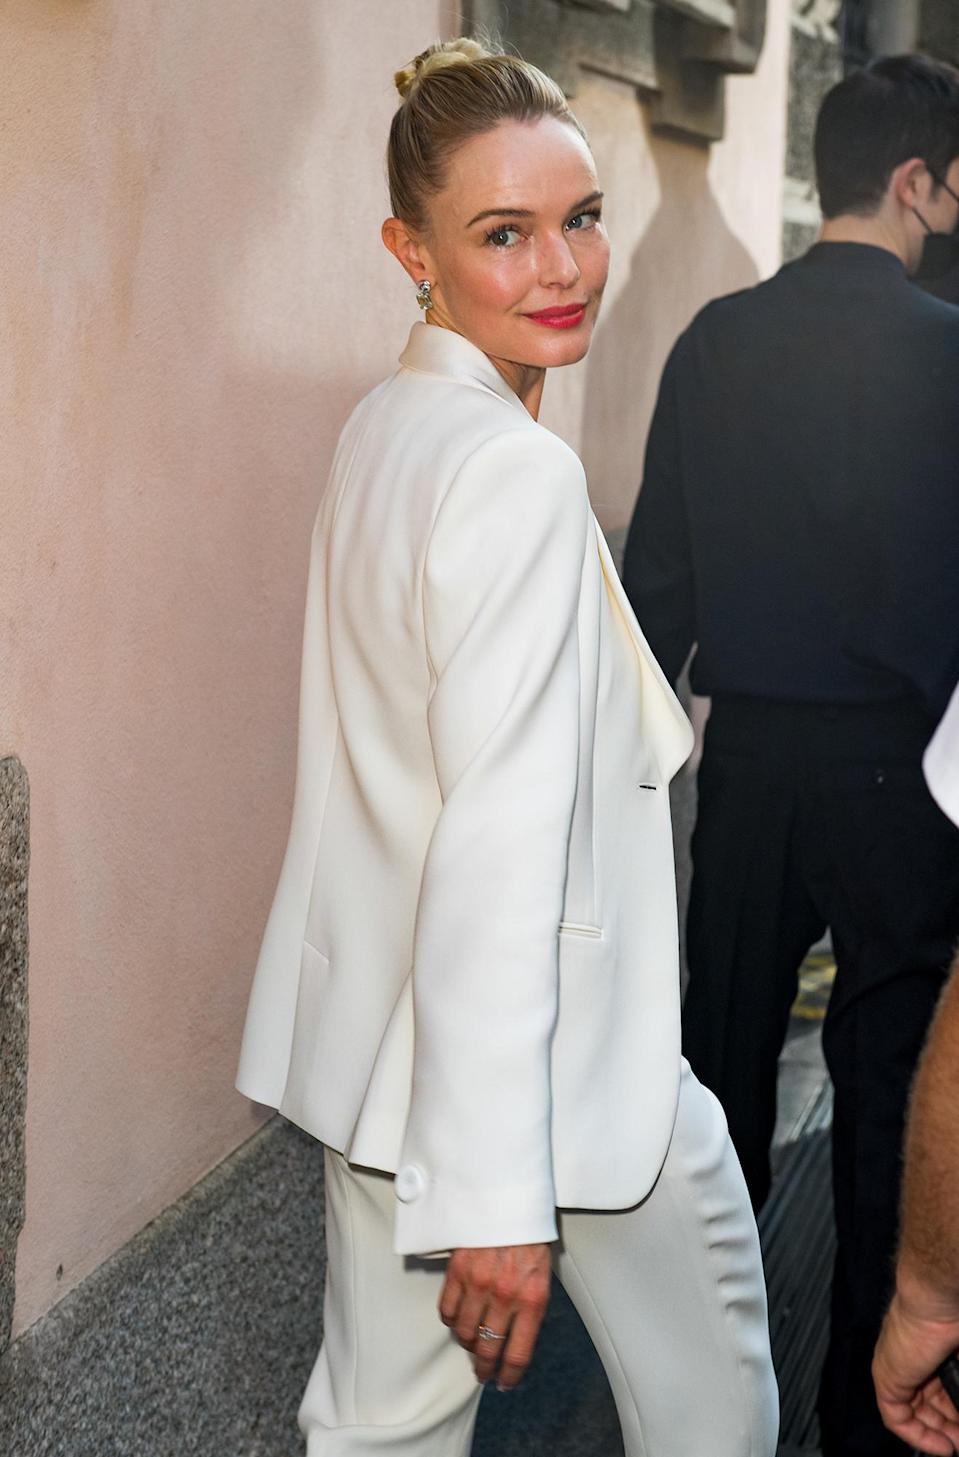 <p>Kate Bosworth arrives in all white at the Giorgio Armani Fashion Show during Milan Men's Fashion Week on June 21 in Milan.</p>